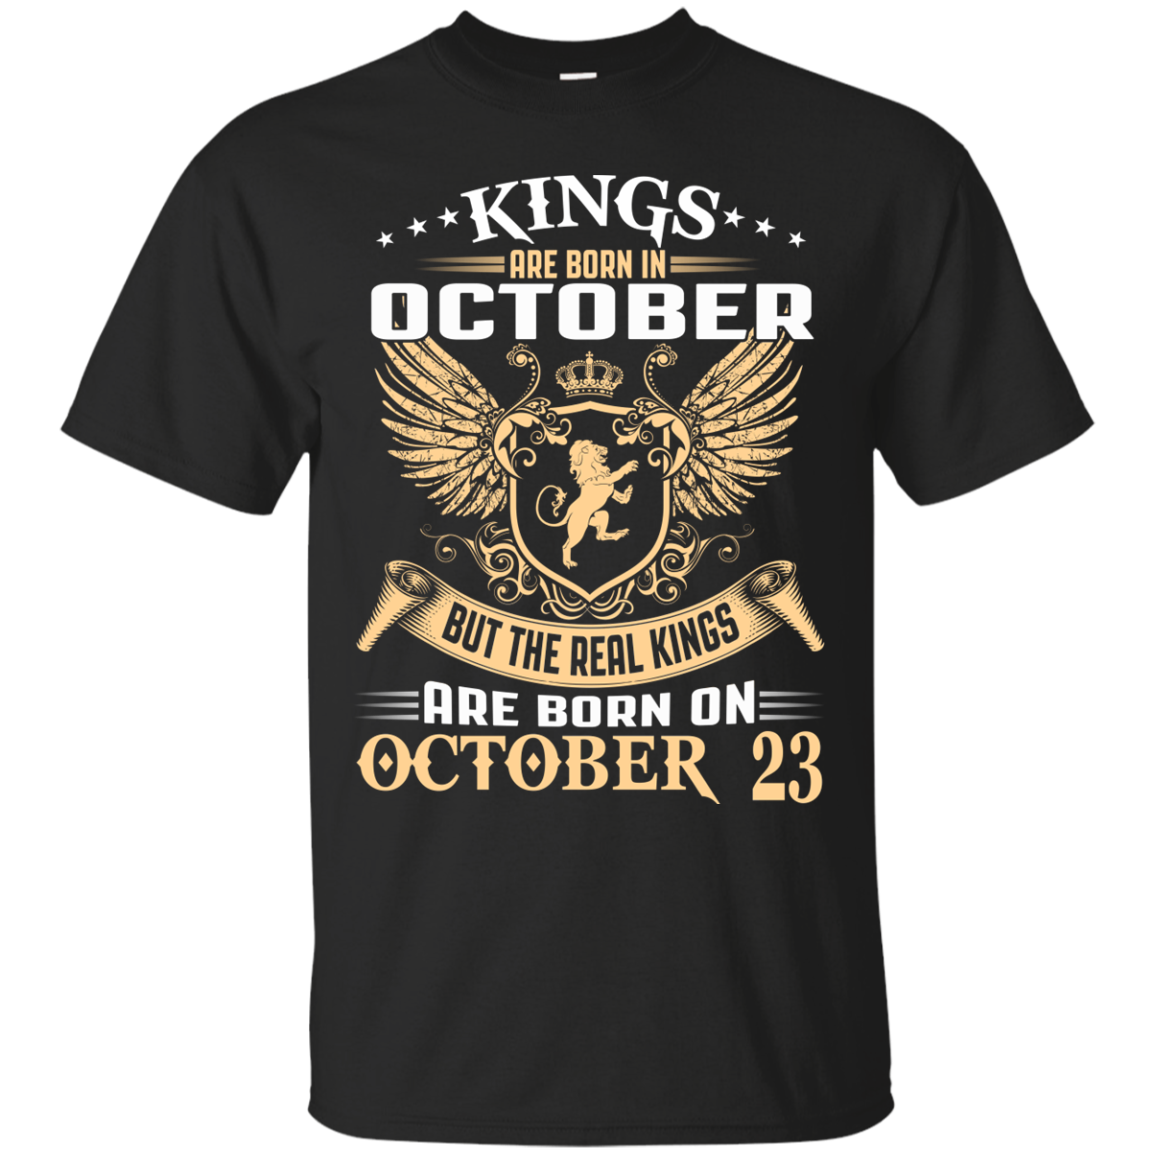 @1 The real kings are born on october 30